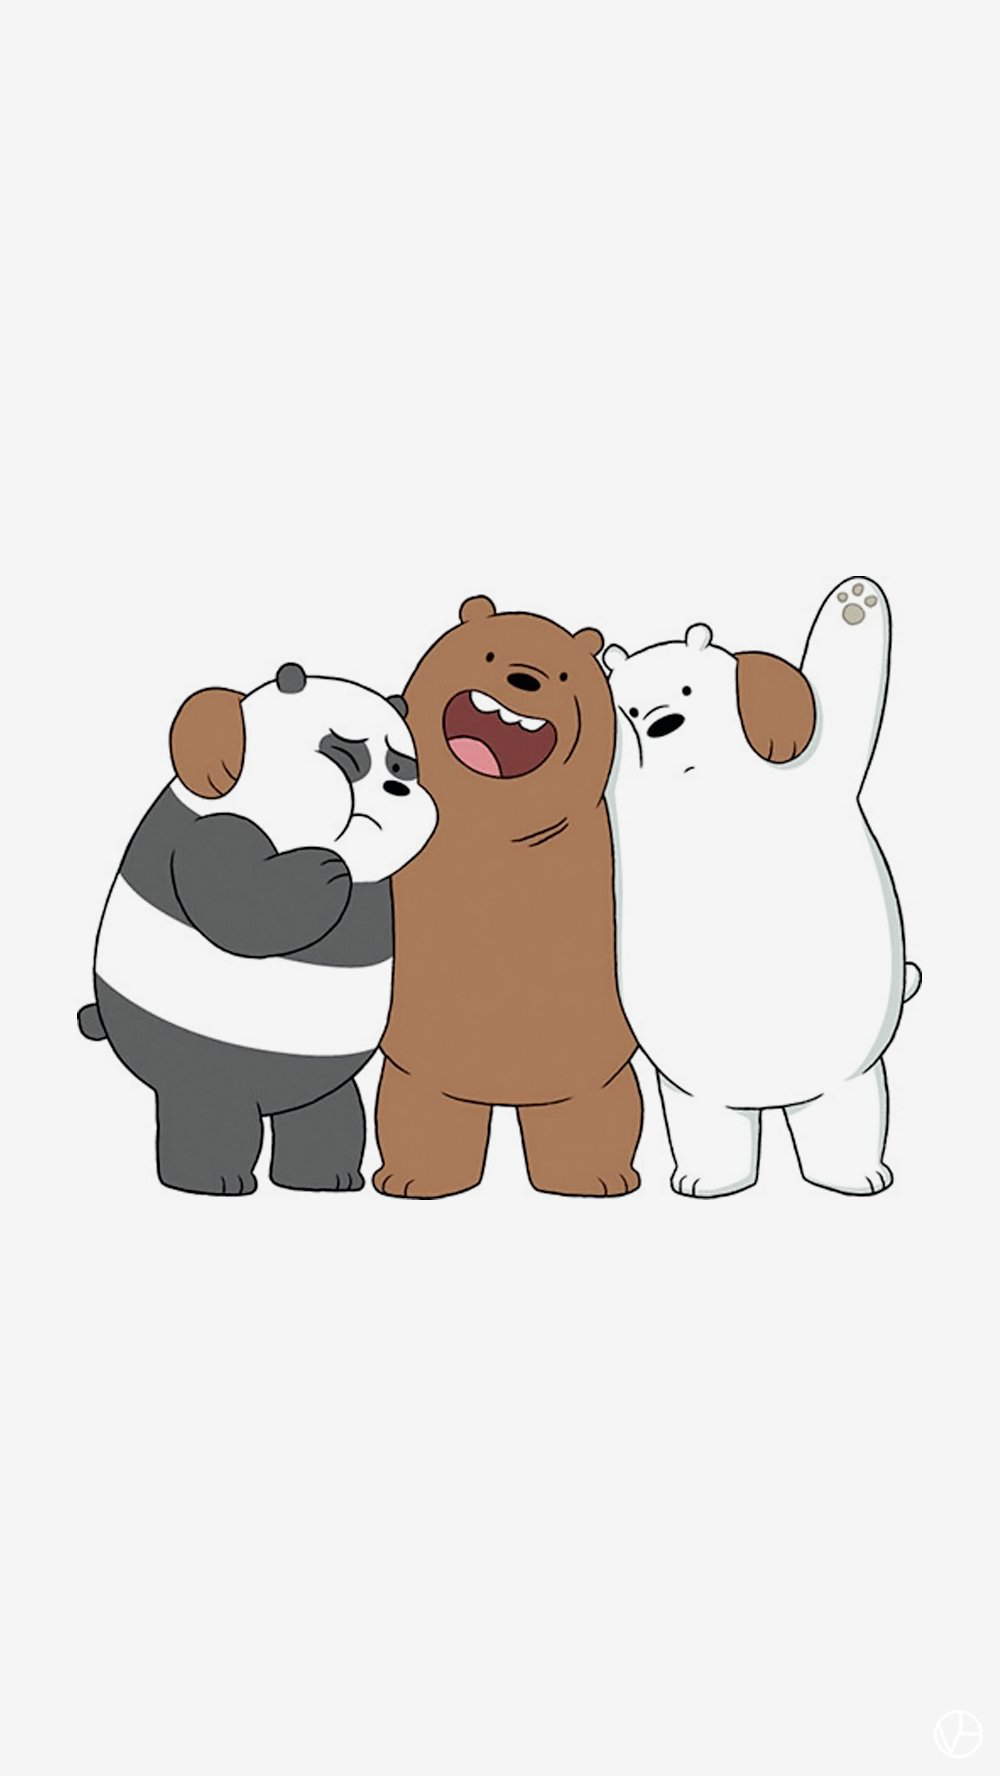 pinnutg on wallpaper | pinterest | bare bears, wallpaper and